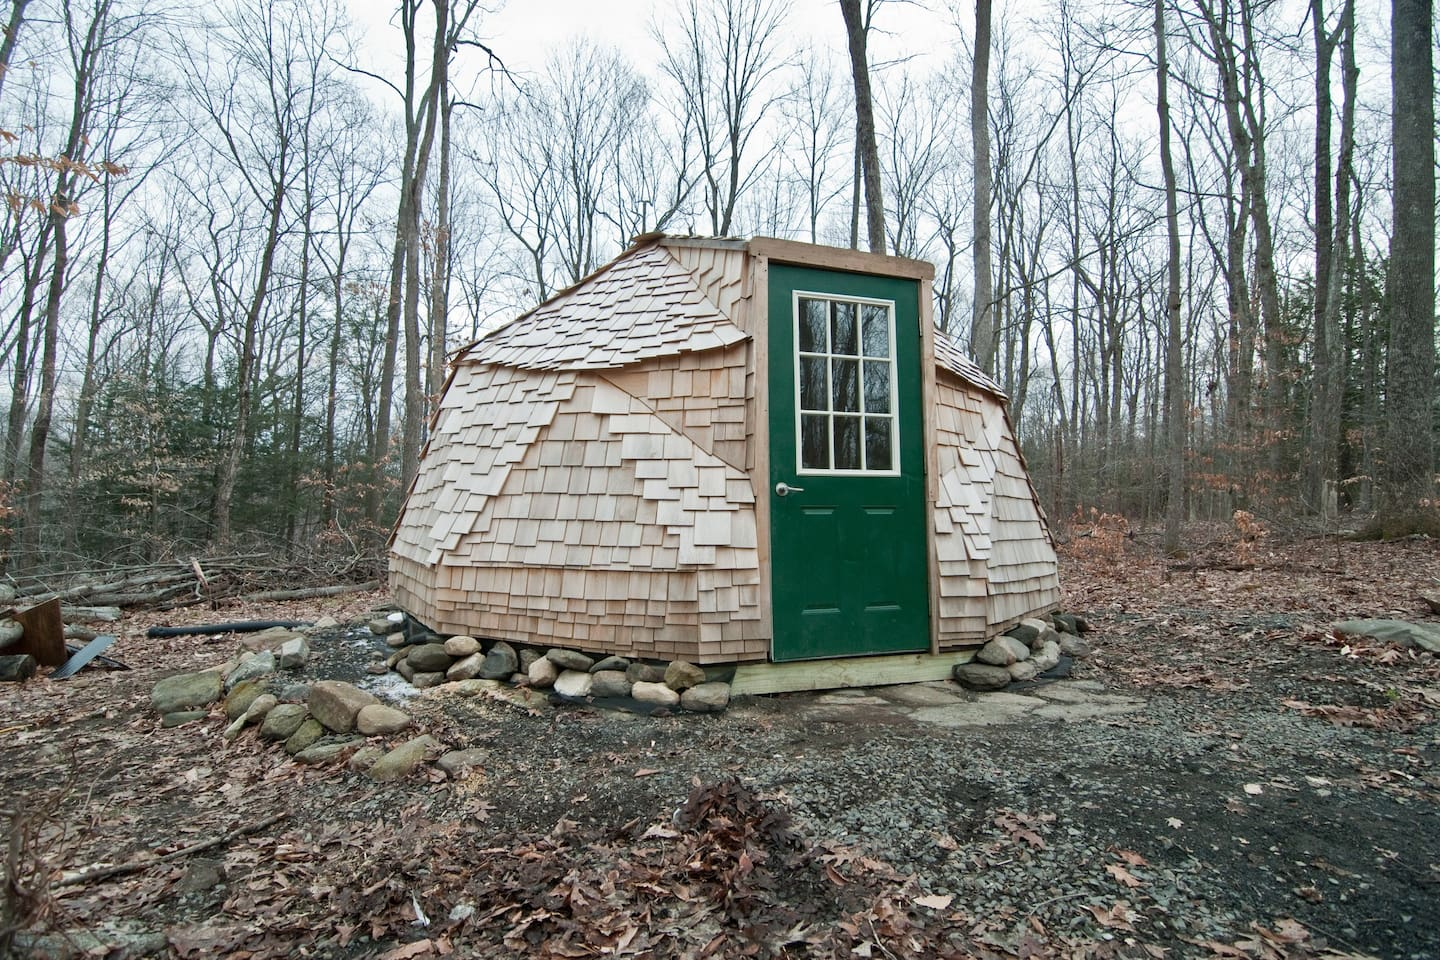 A Geodesic Dome Bed and Breakfast in Connecticut